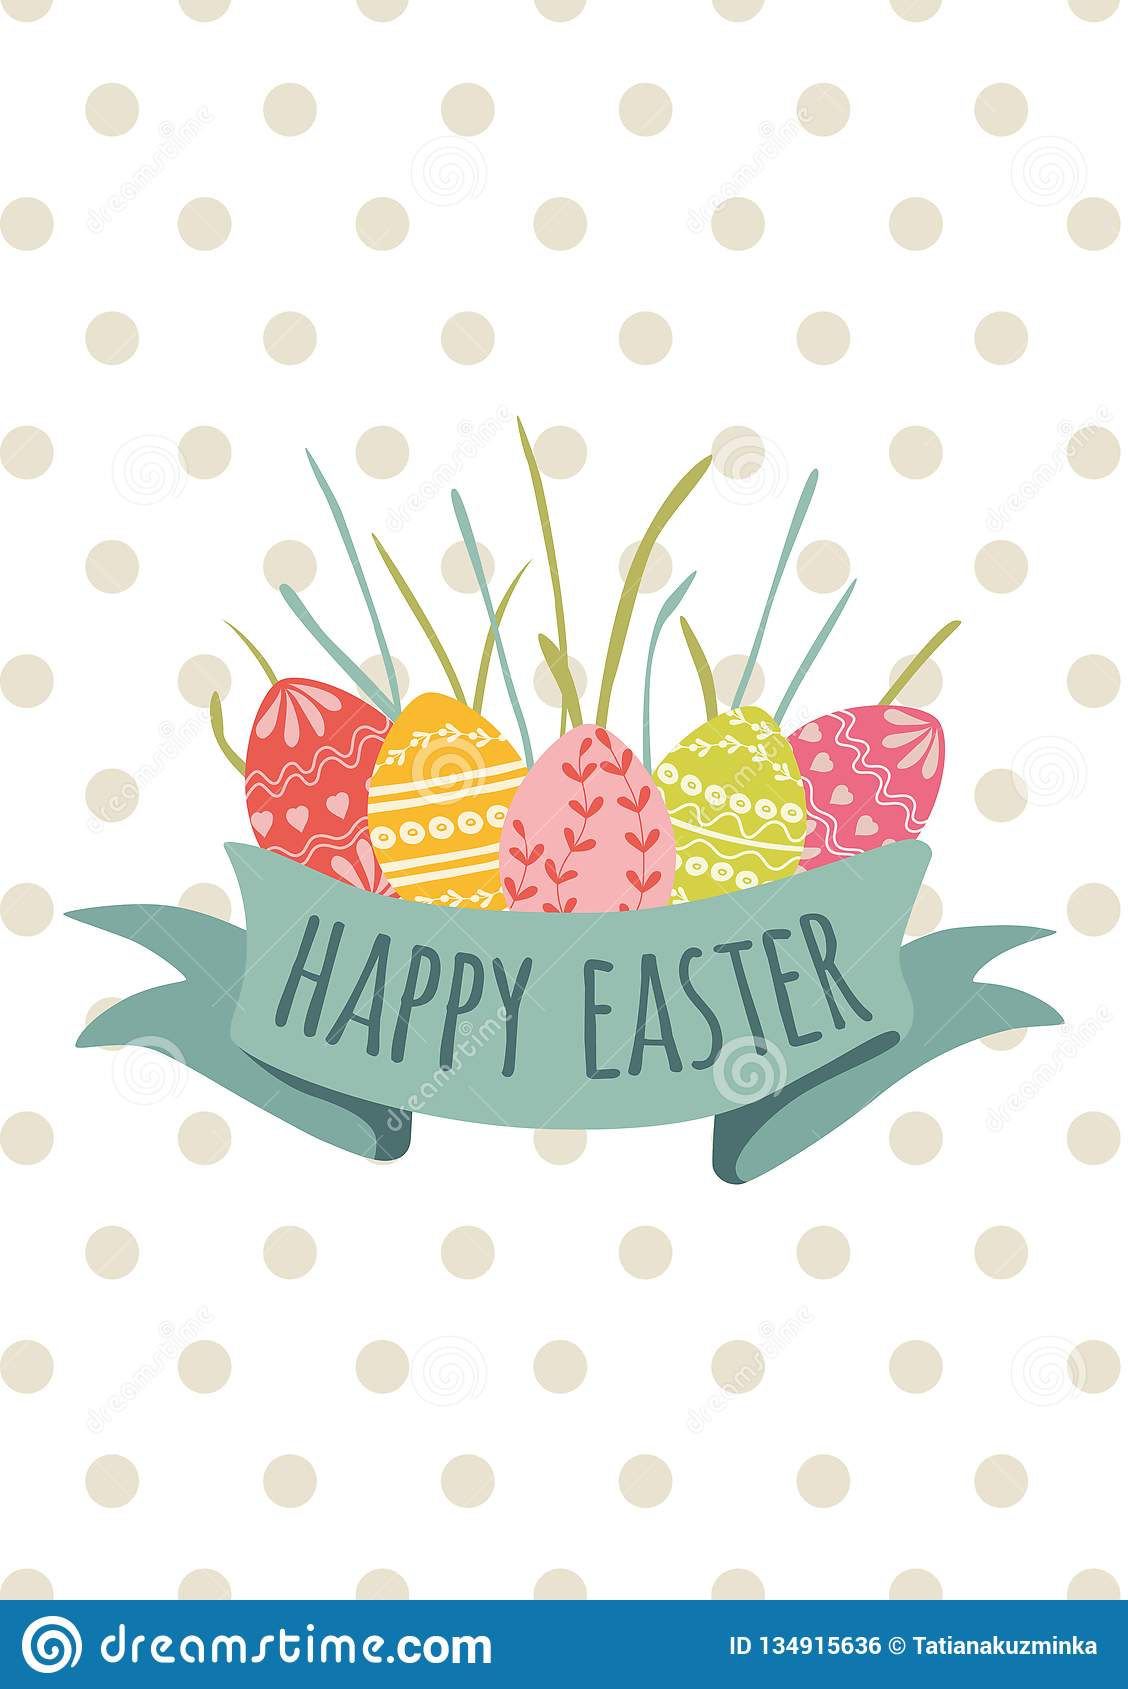 image relating to Happy Easter Cards Printable called Ribbon With Words Delighted Easter Card Templates With Eggs Gr